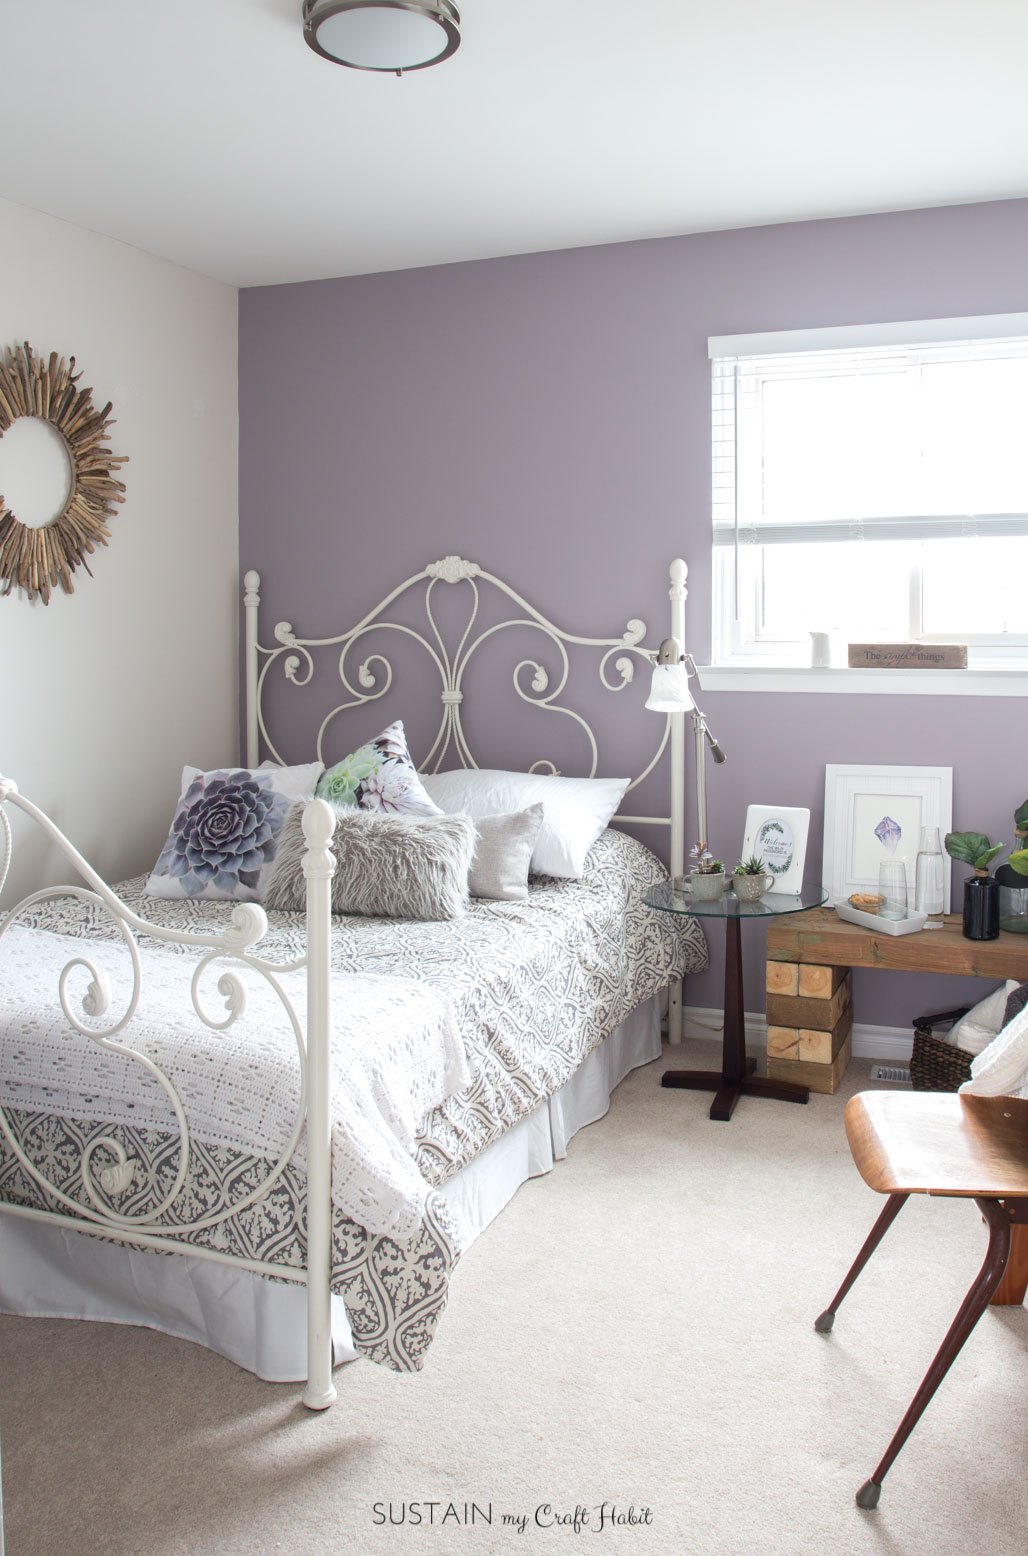 Mauve lous guest bedroom ideas a simple spare room for Easy diy room decor pinterest